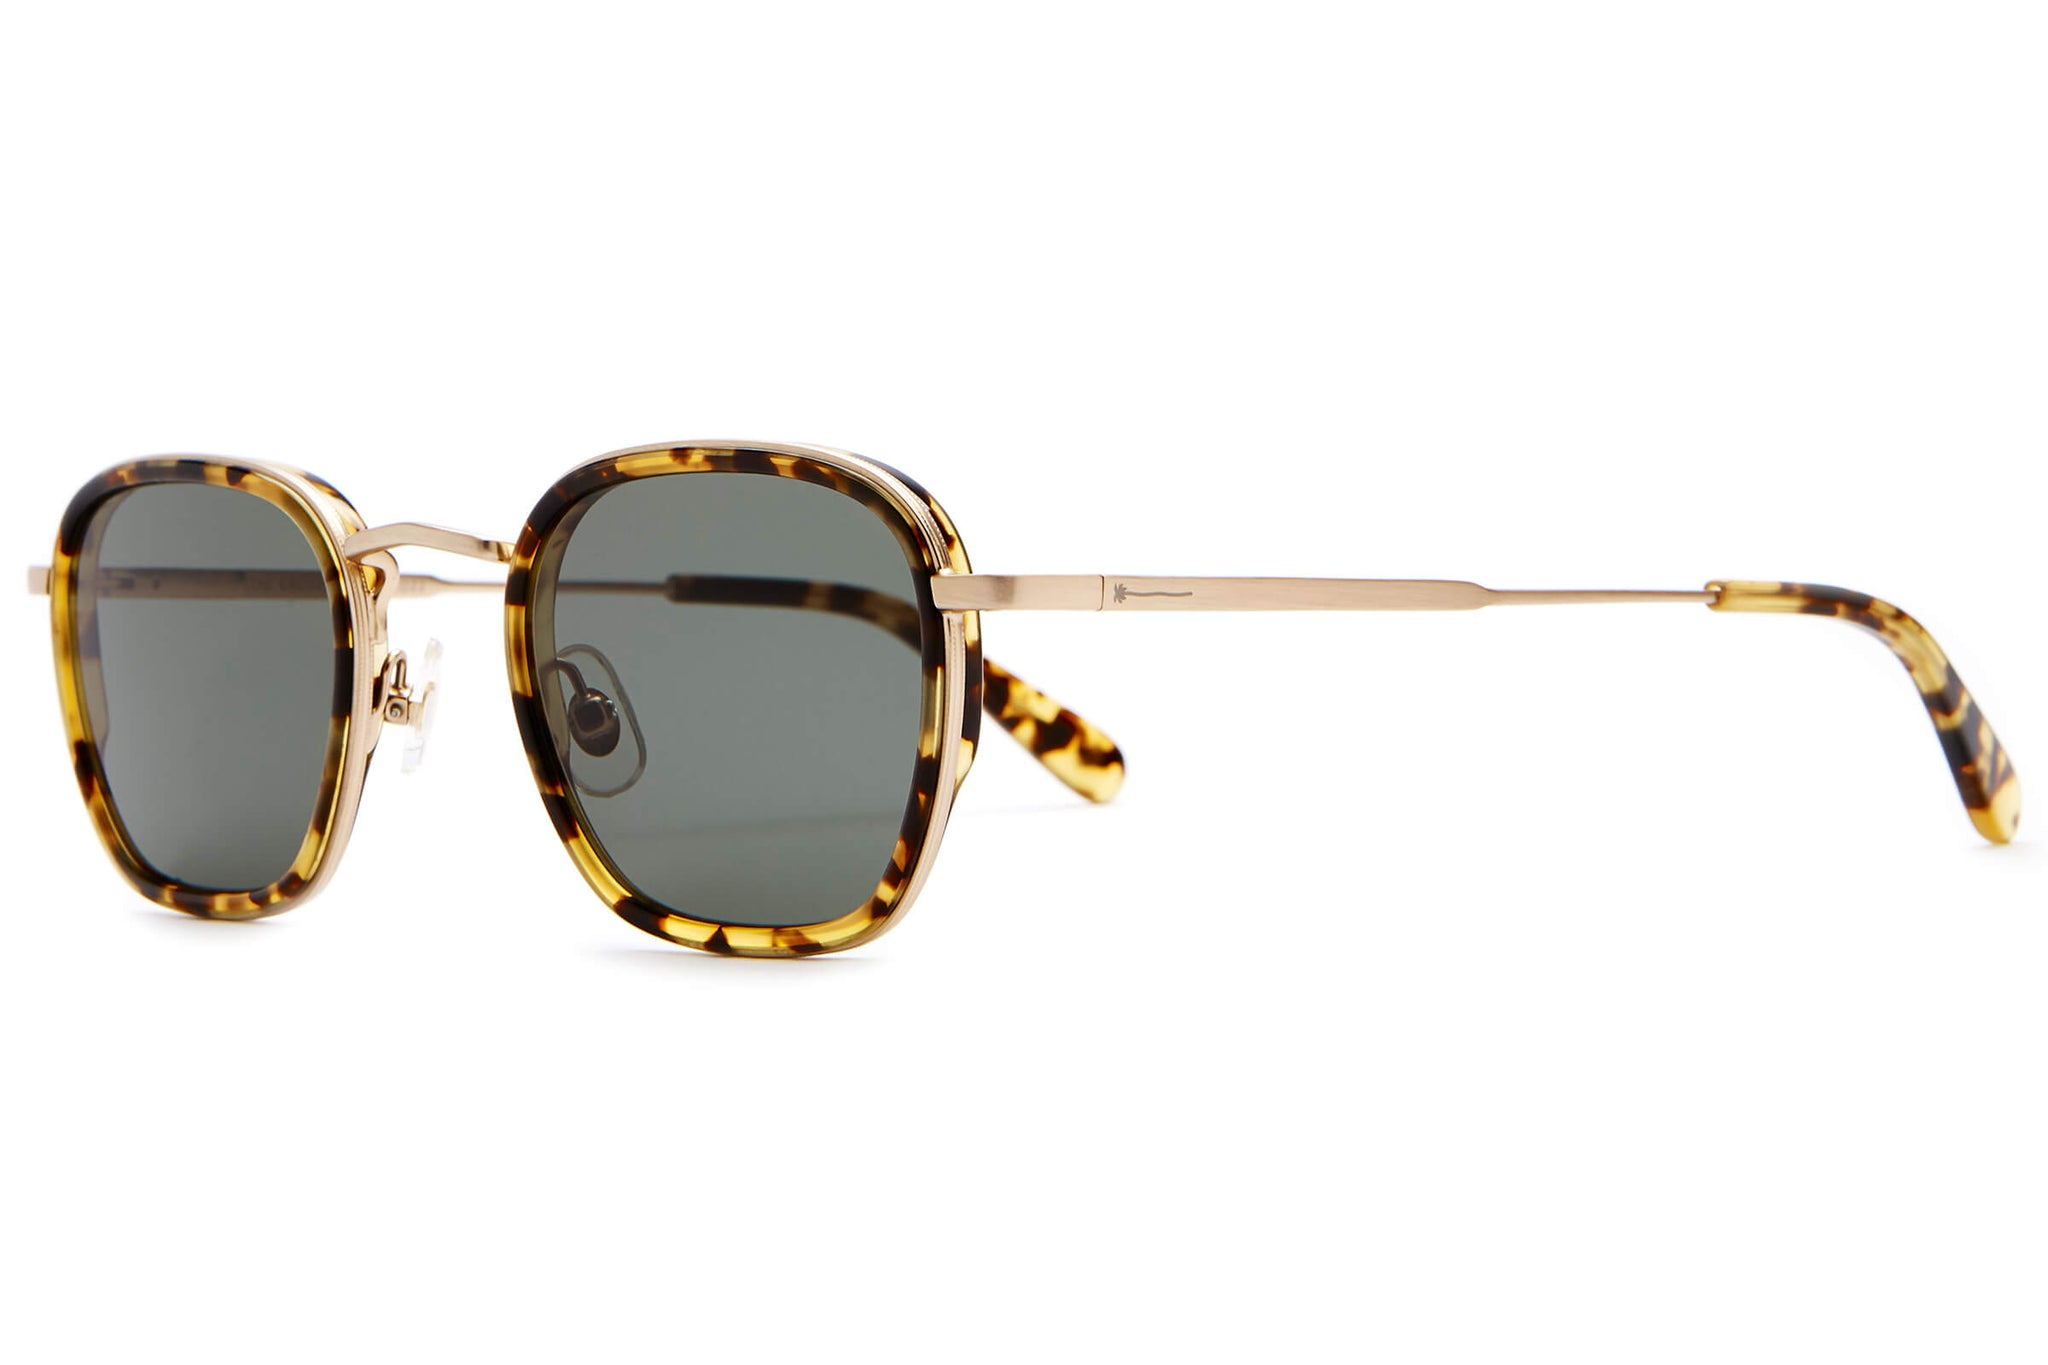 The Groove Pilot - Brushed Gold & Tokyo Tortoise - / Vintage Green - Sunglasses